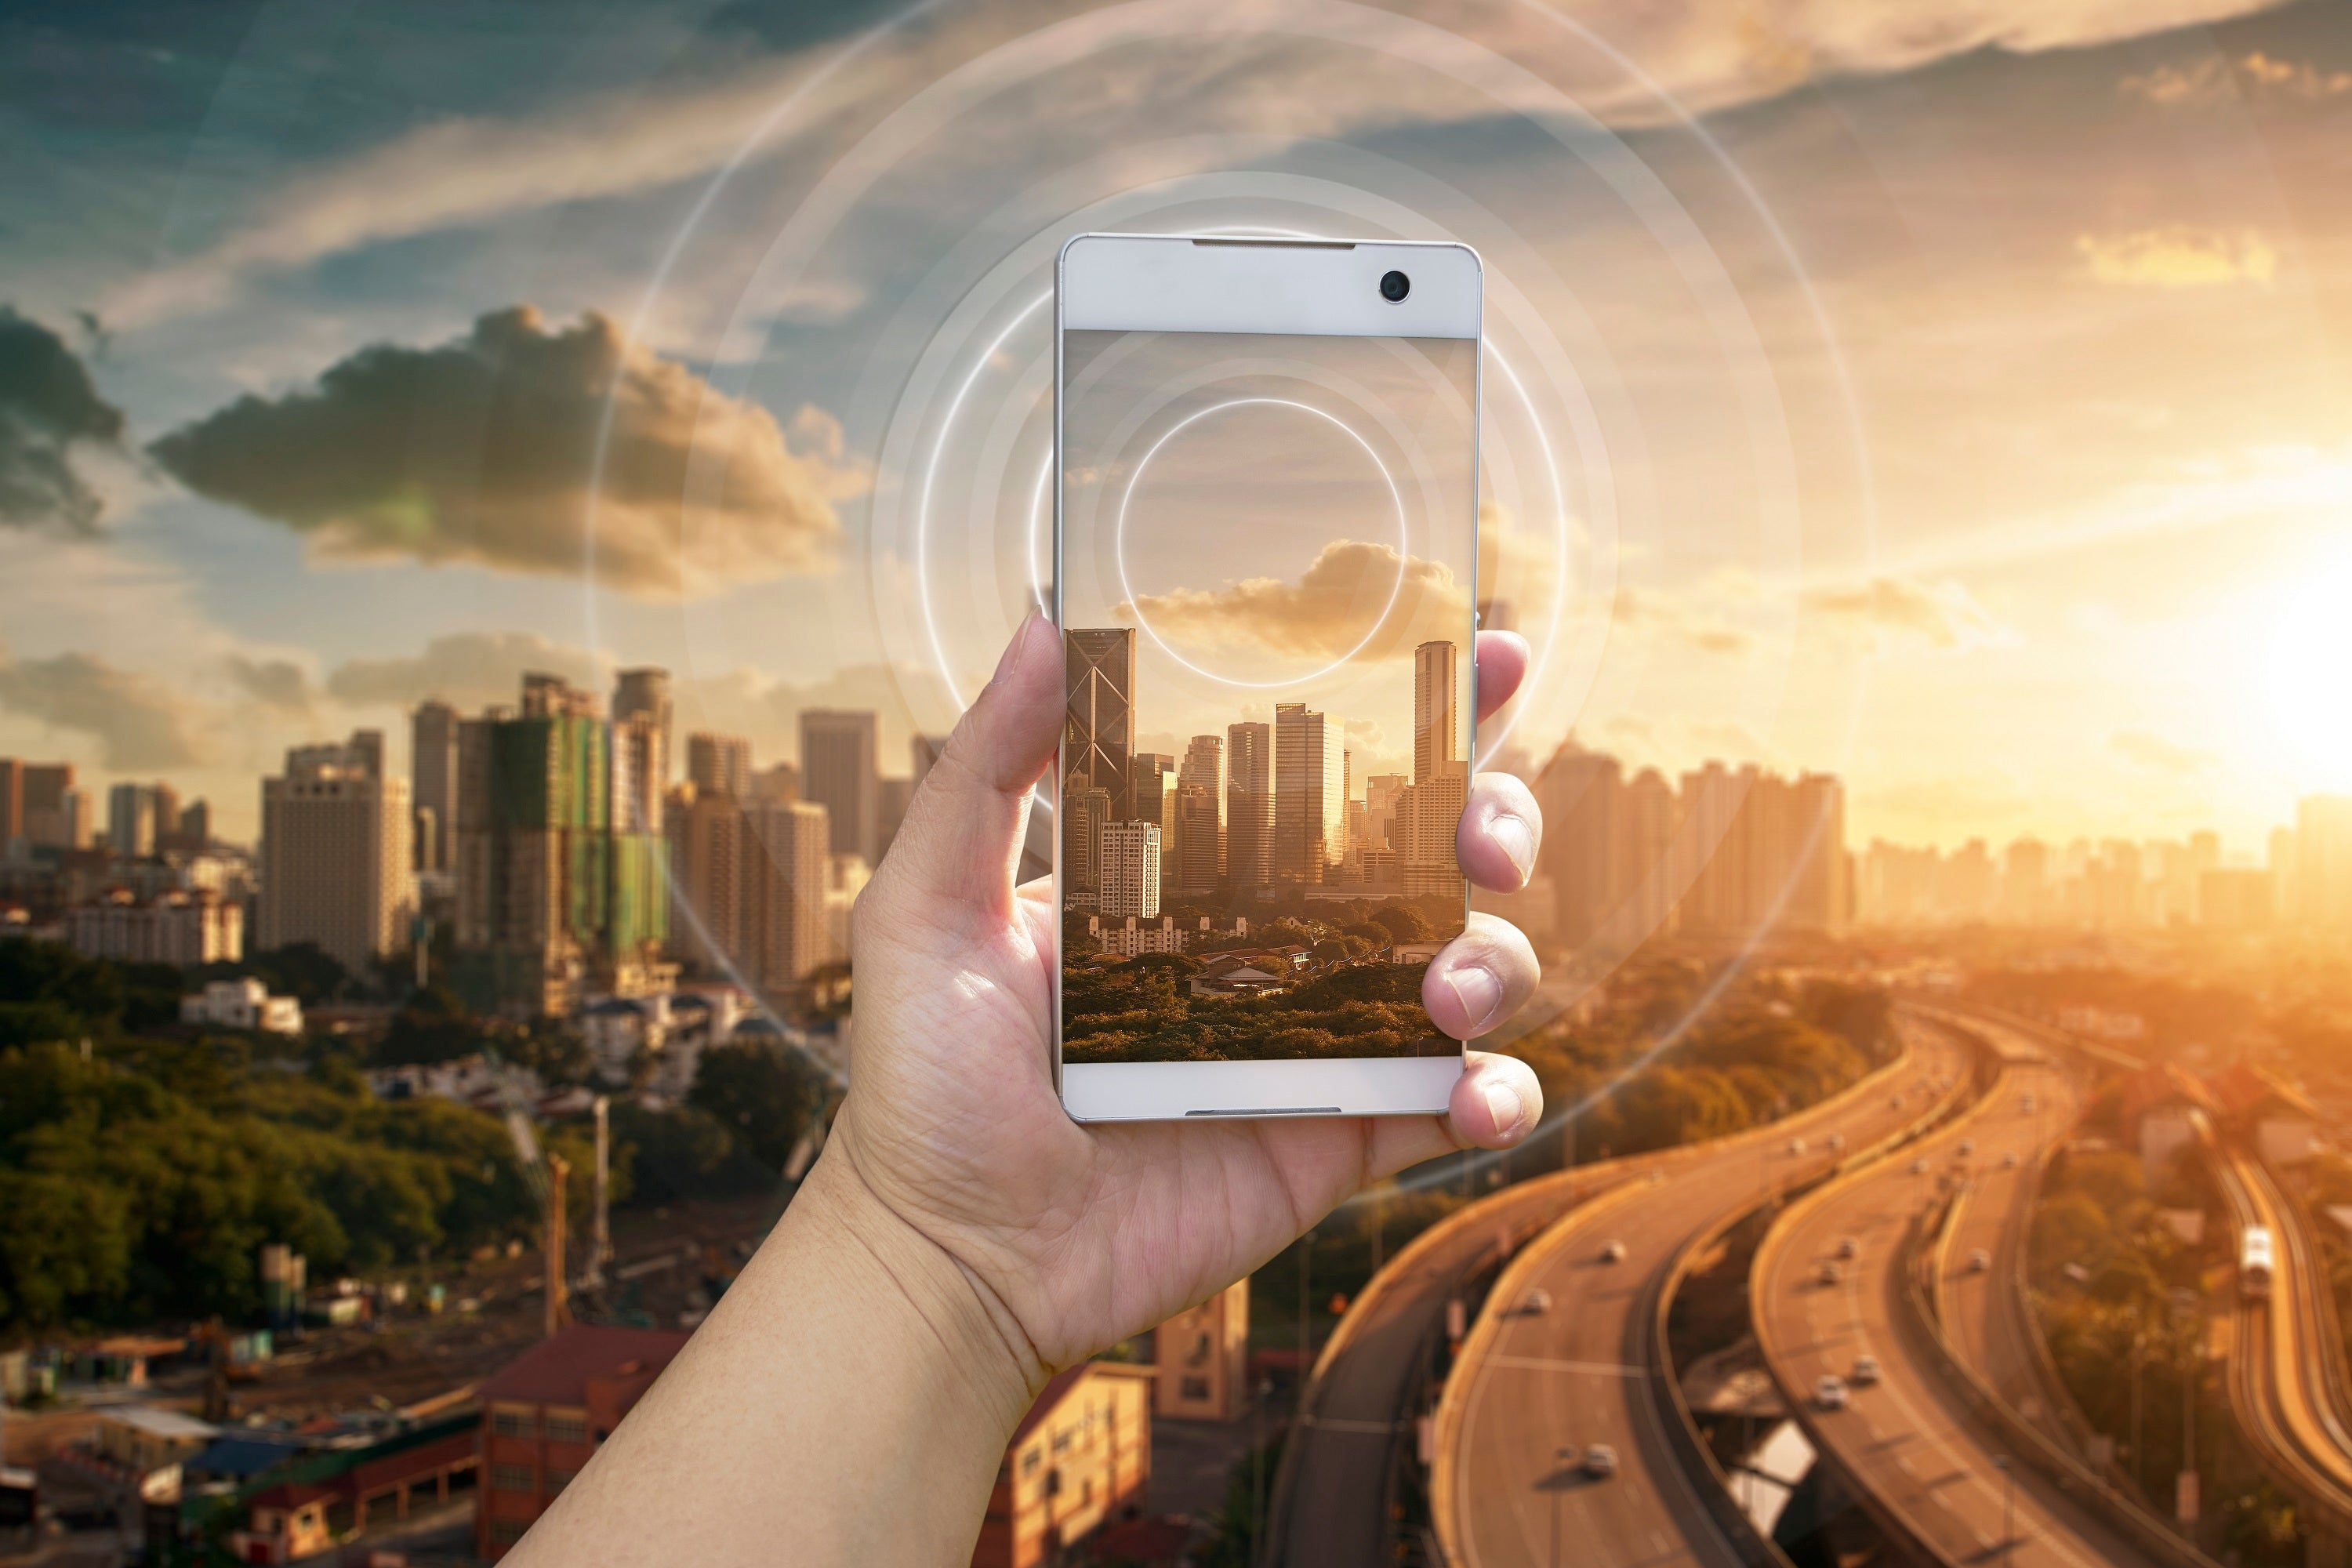 Phone being held in front of city landscape.